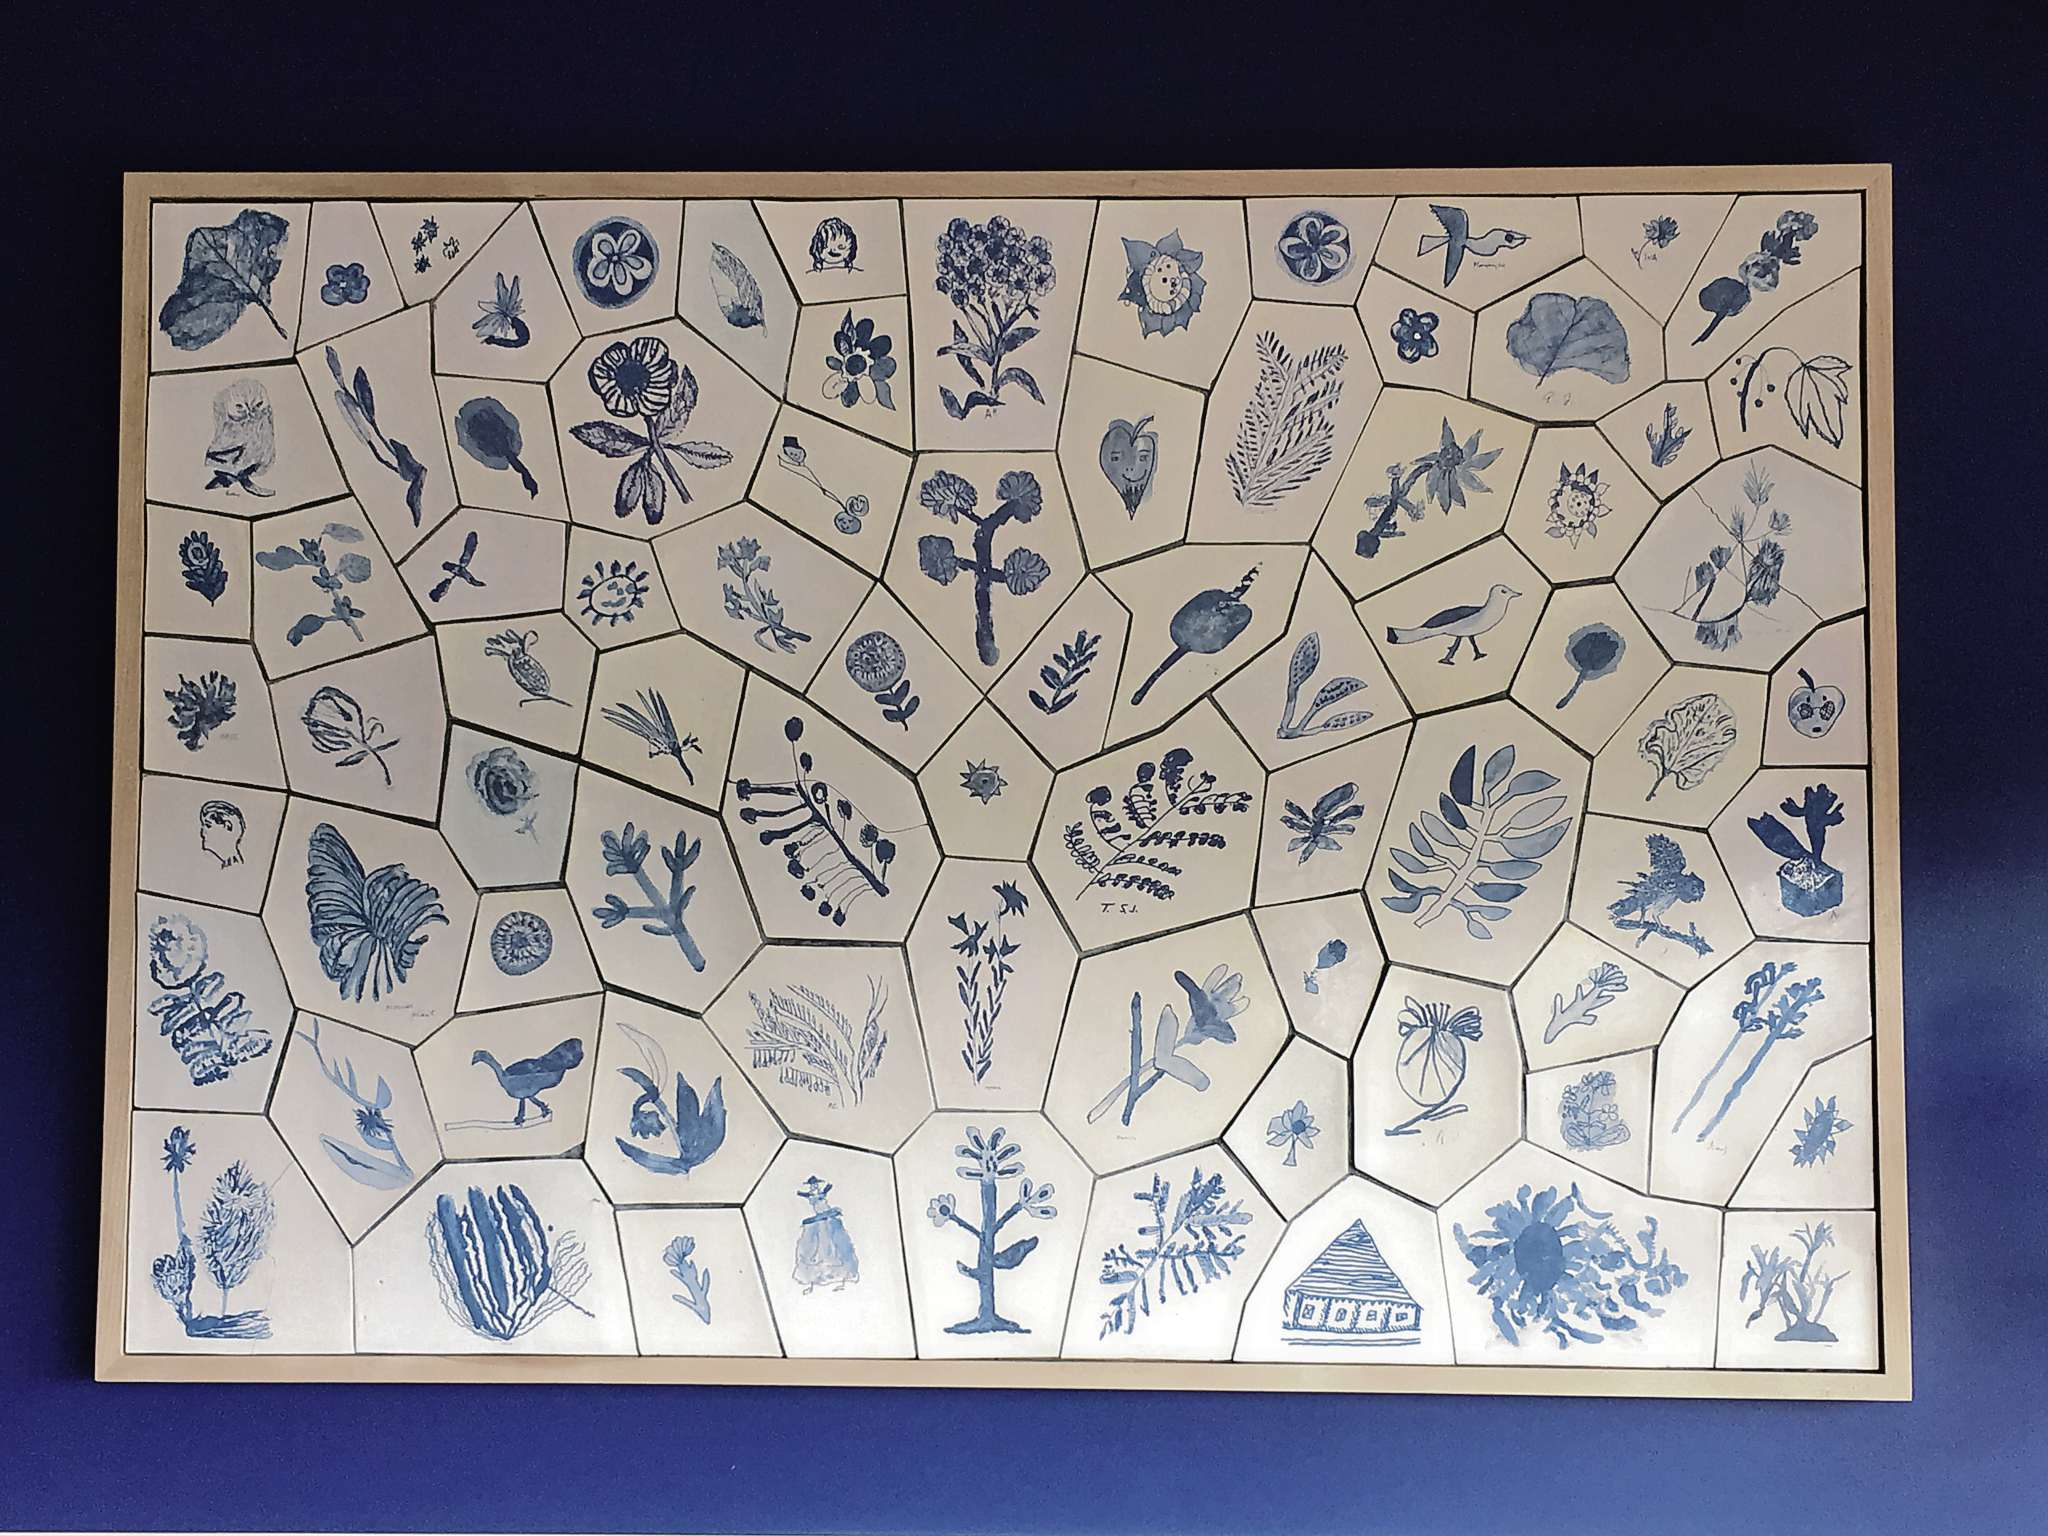 Toby Gillies' collaborative piece, titled Heirloom. It features drawings by workshop participants.